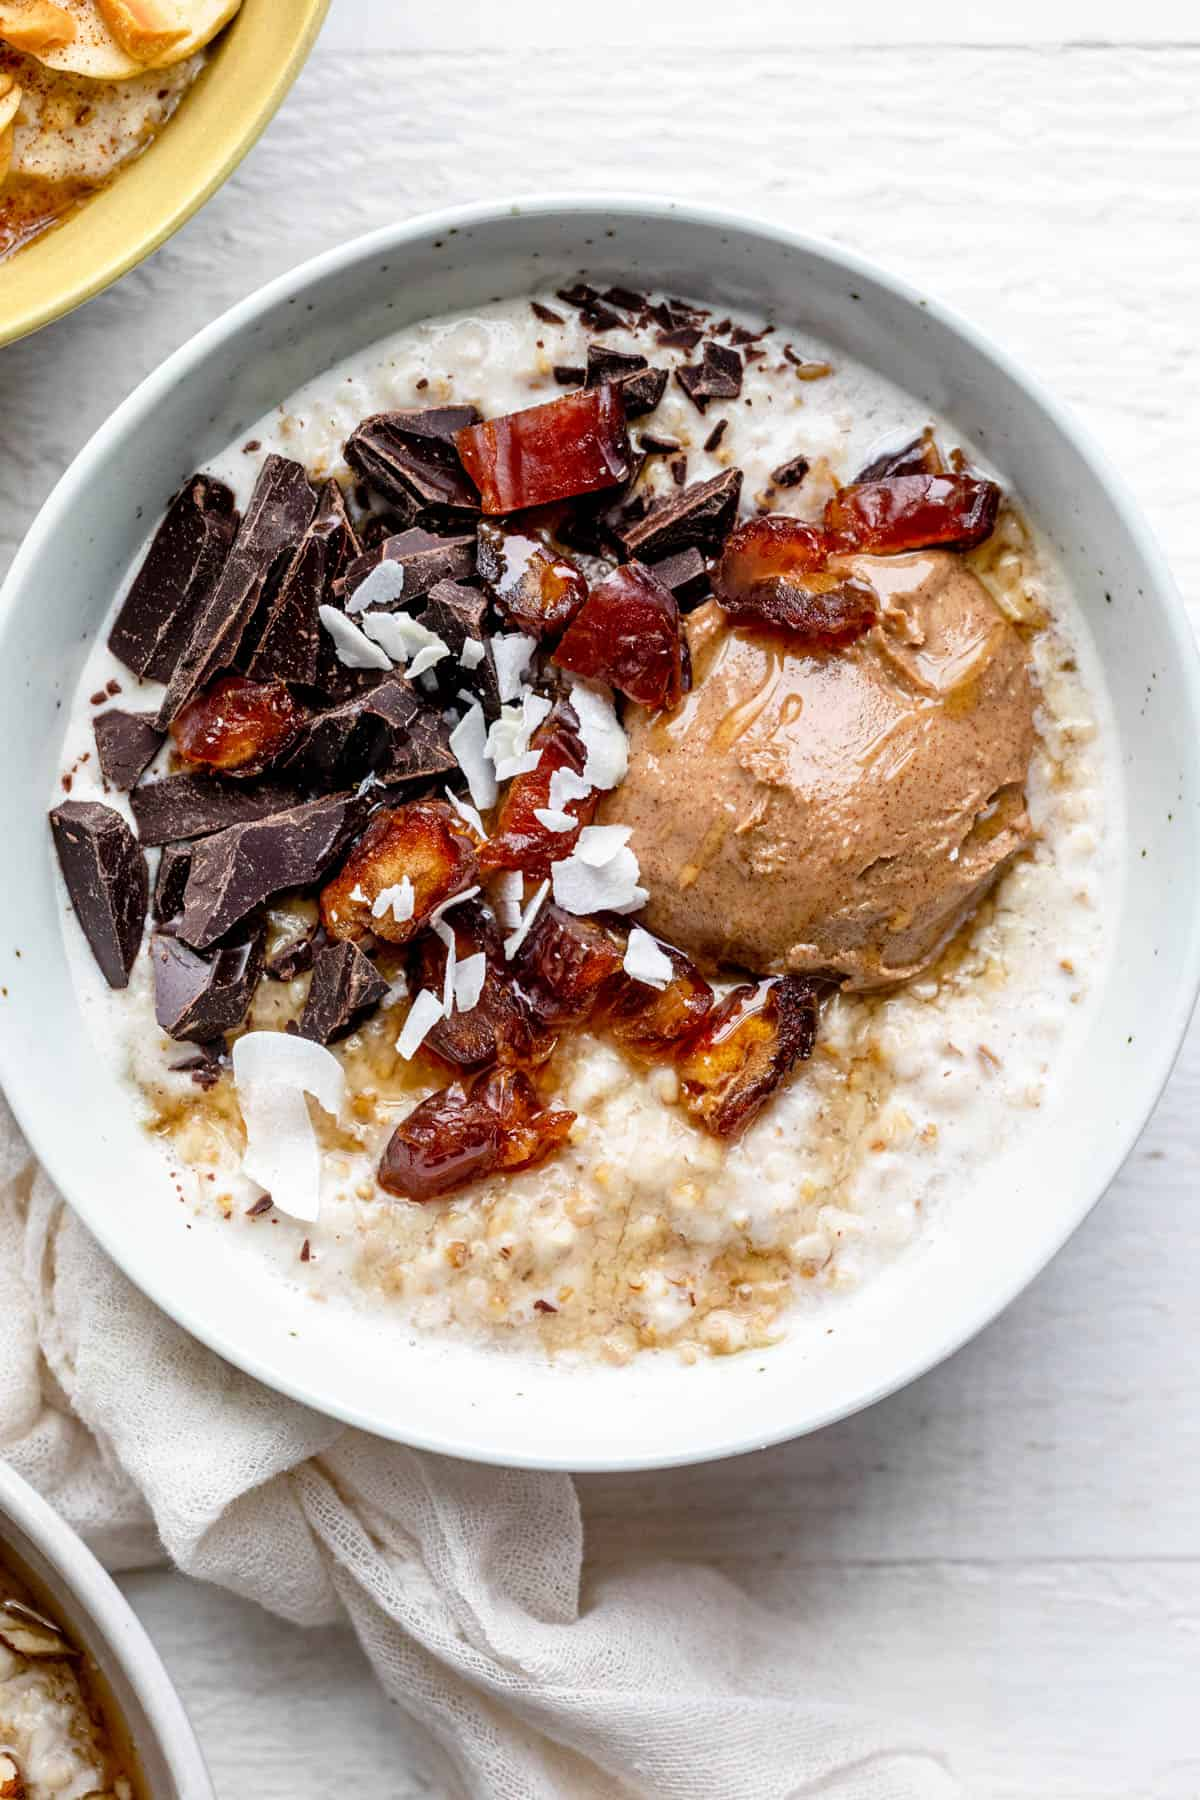 Almond butter, chocolate, dates and coconut over oatmeal